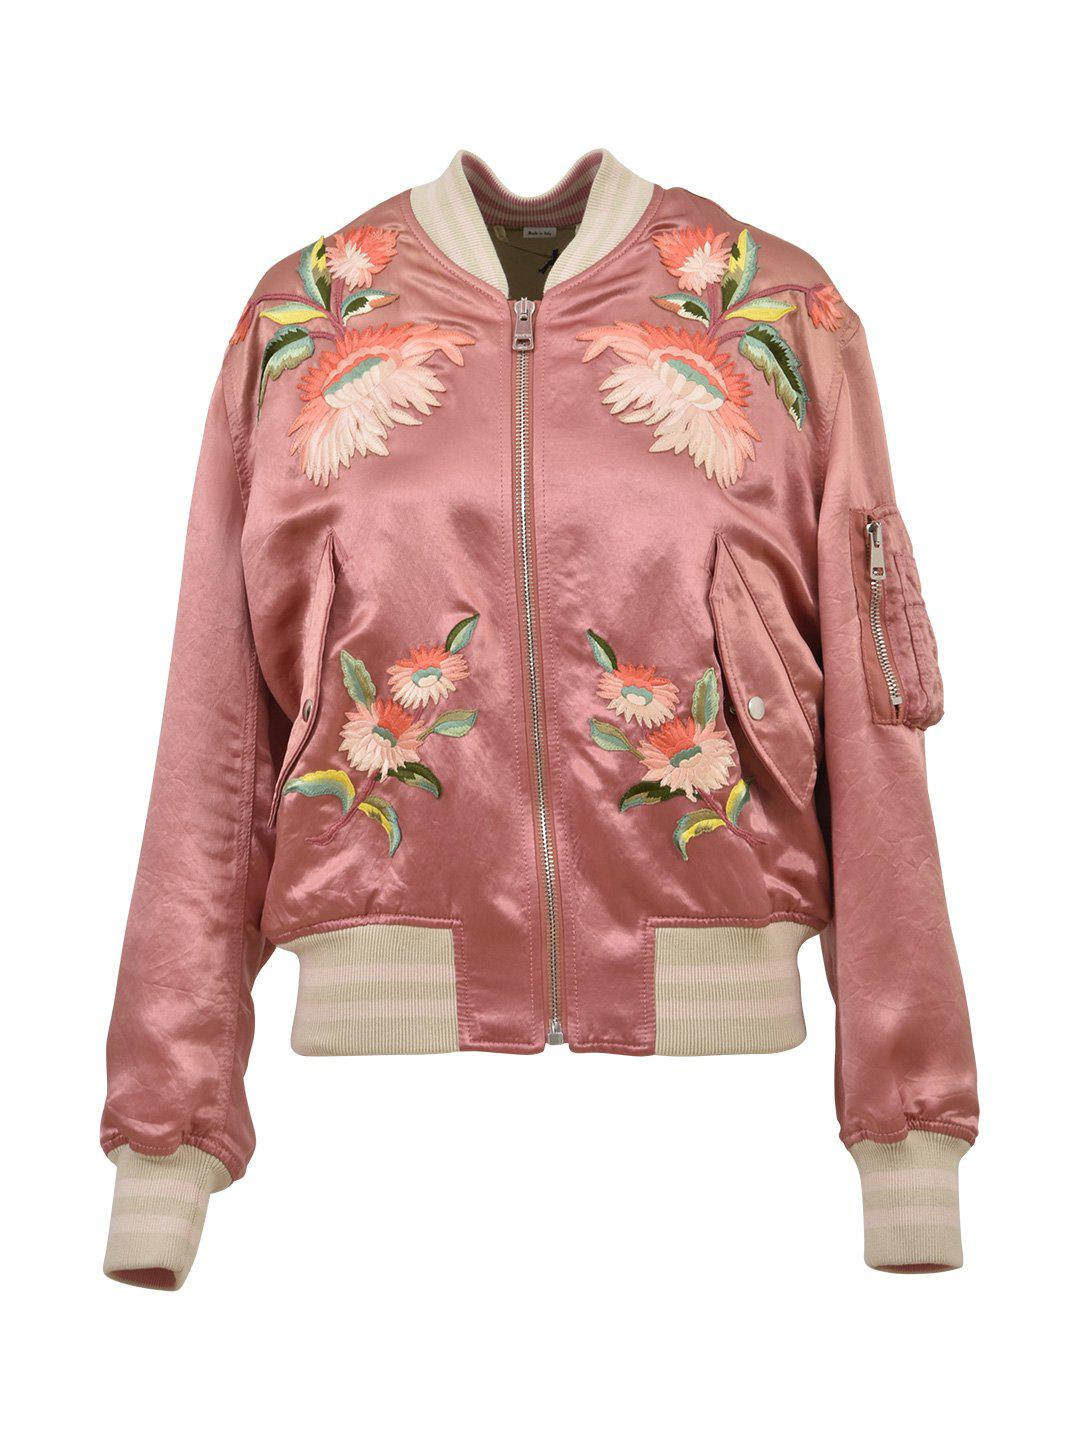 c4419c23 Lyst - Gucci Fication Bomber Jacket in Pink